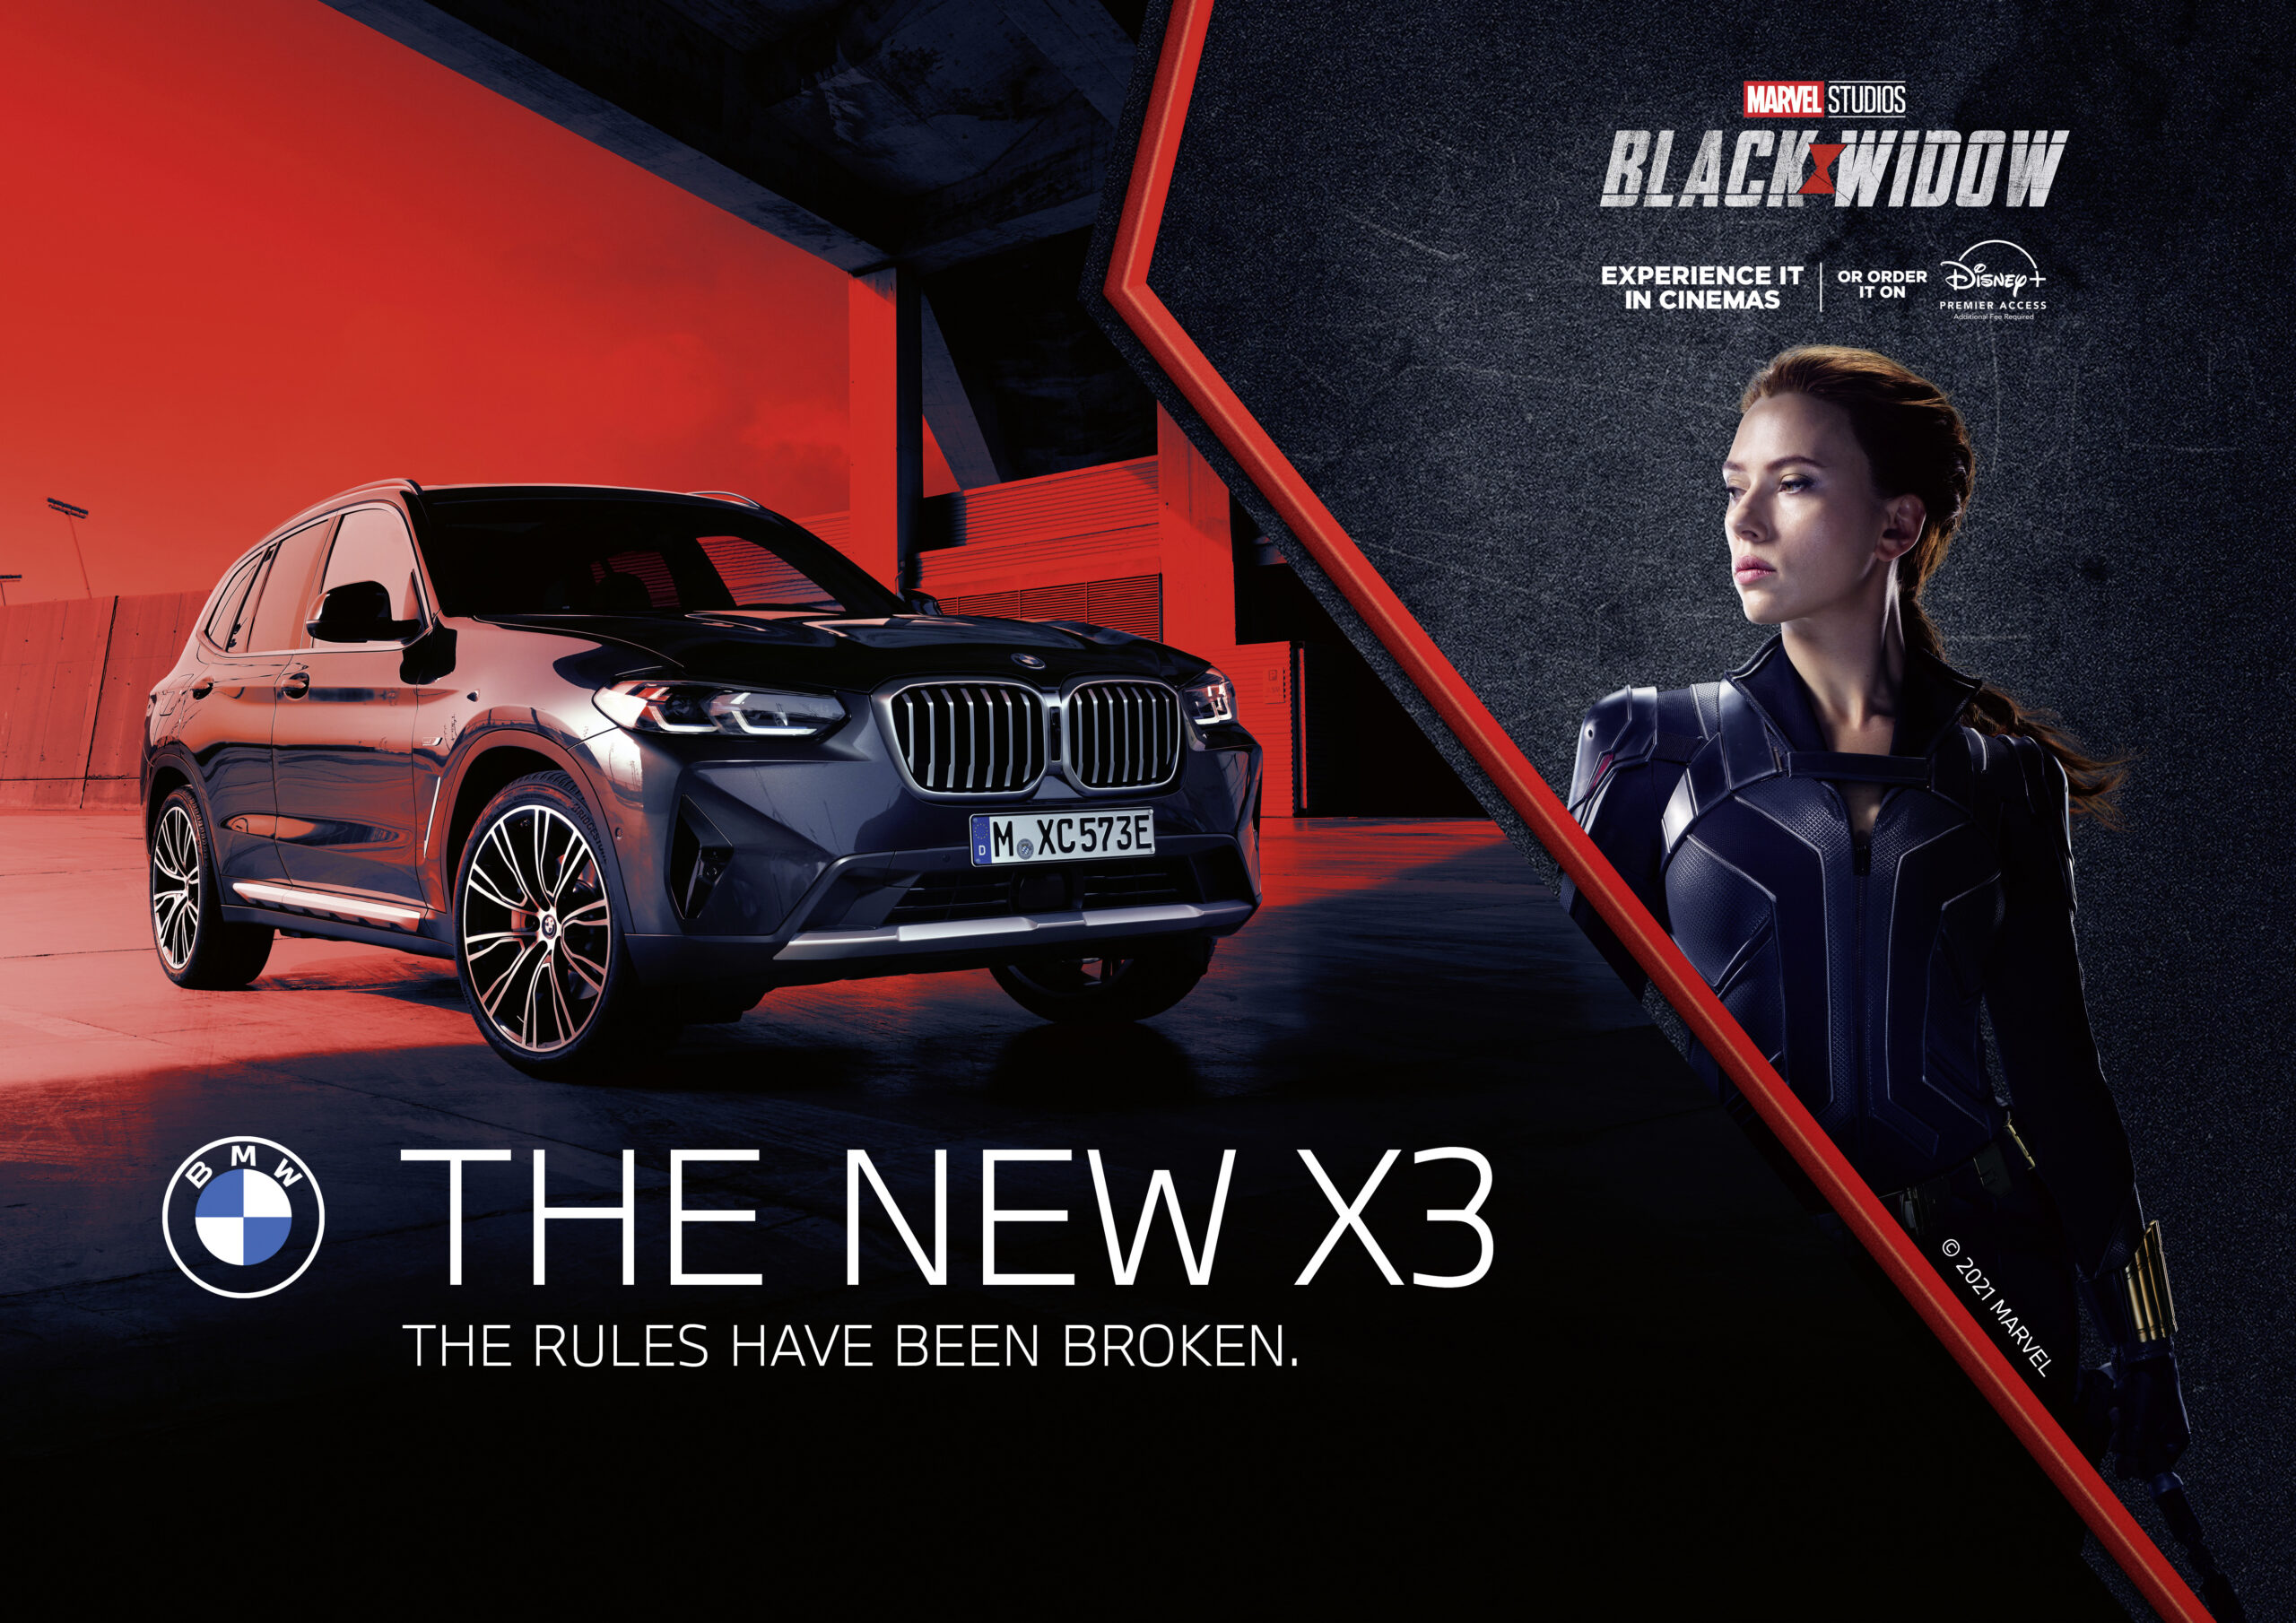 BMW And Marvel Studios Collaborate For Black Widow Movie